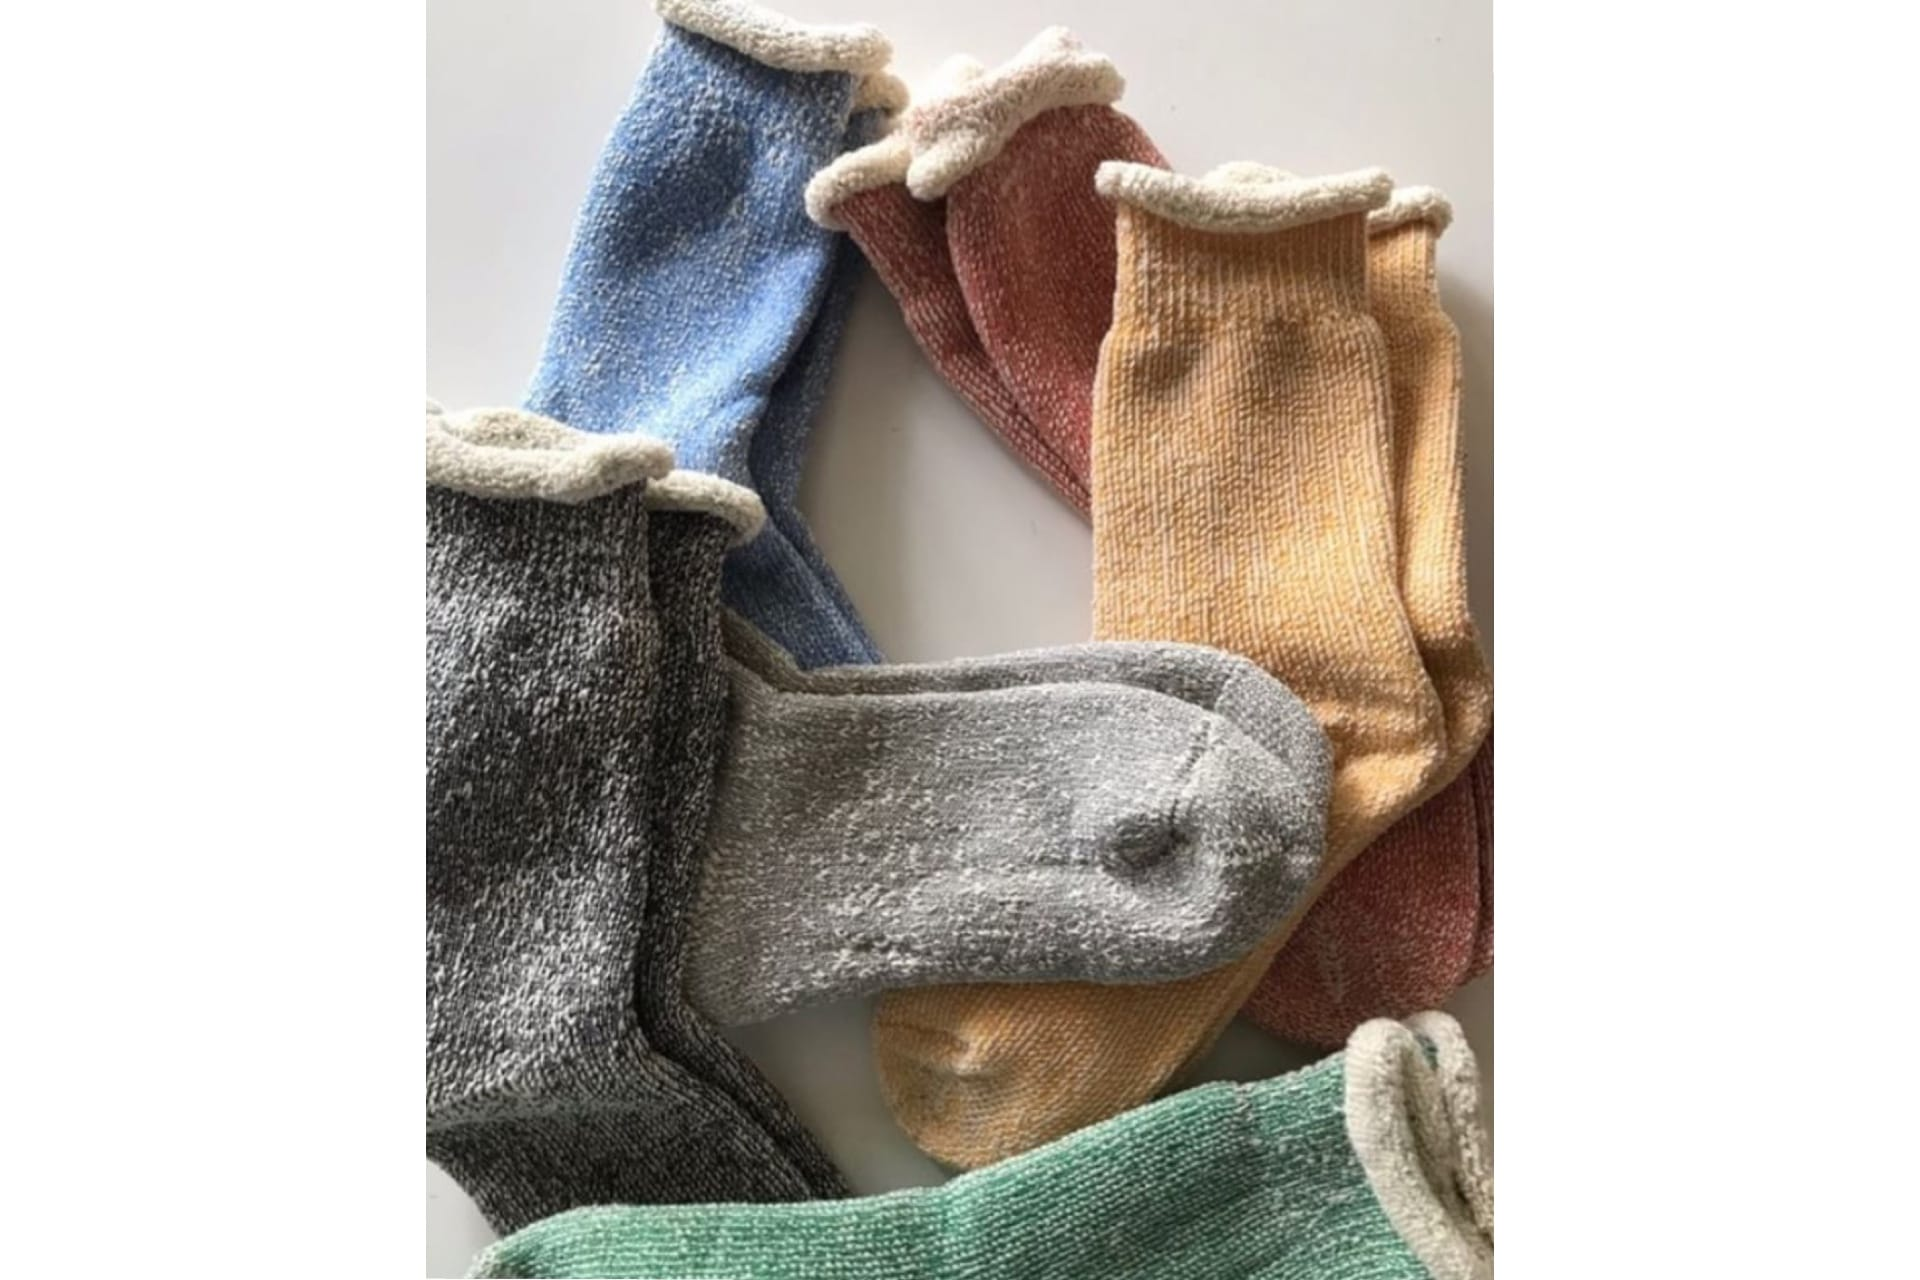 French Terry Socks